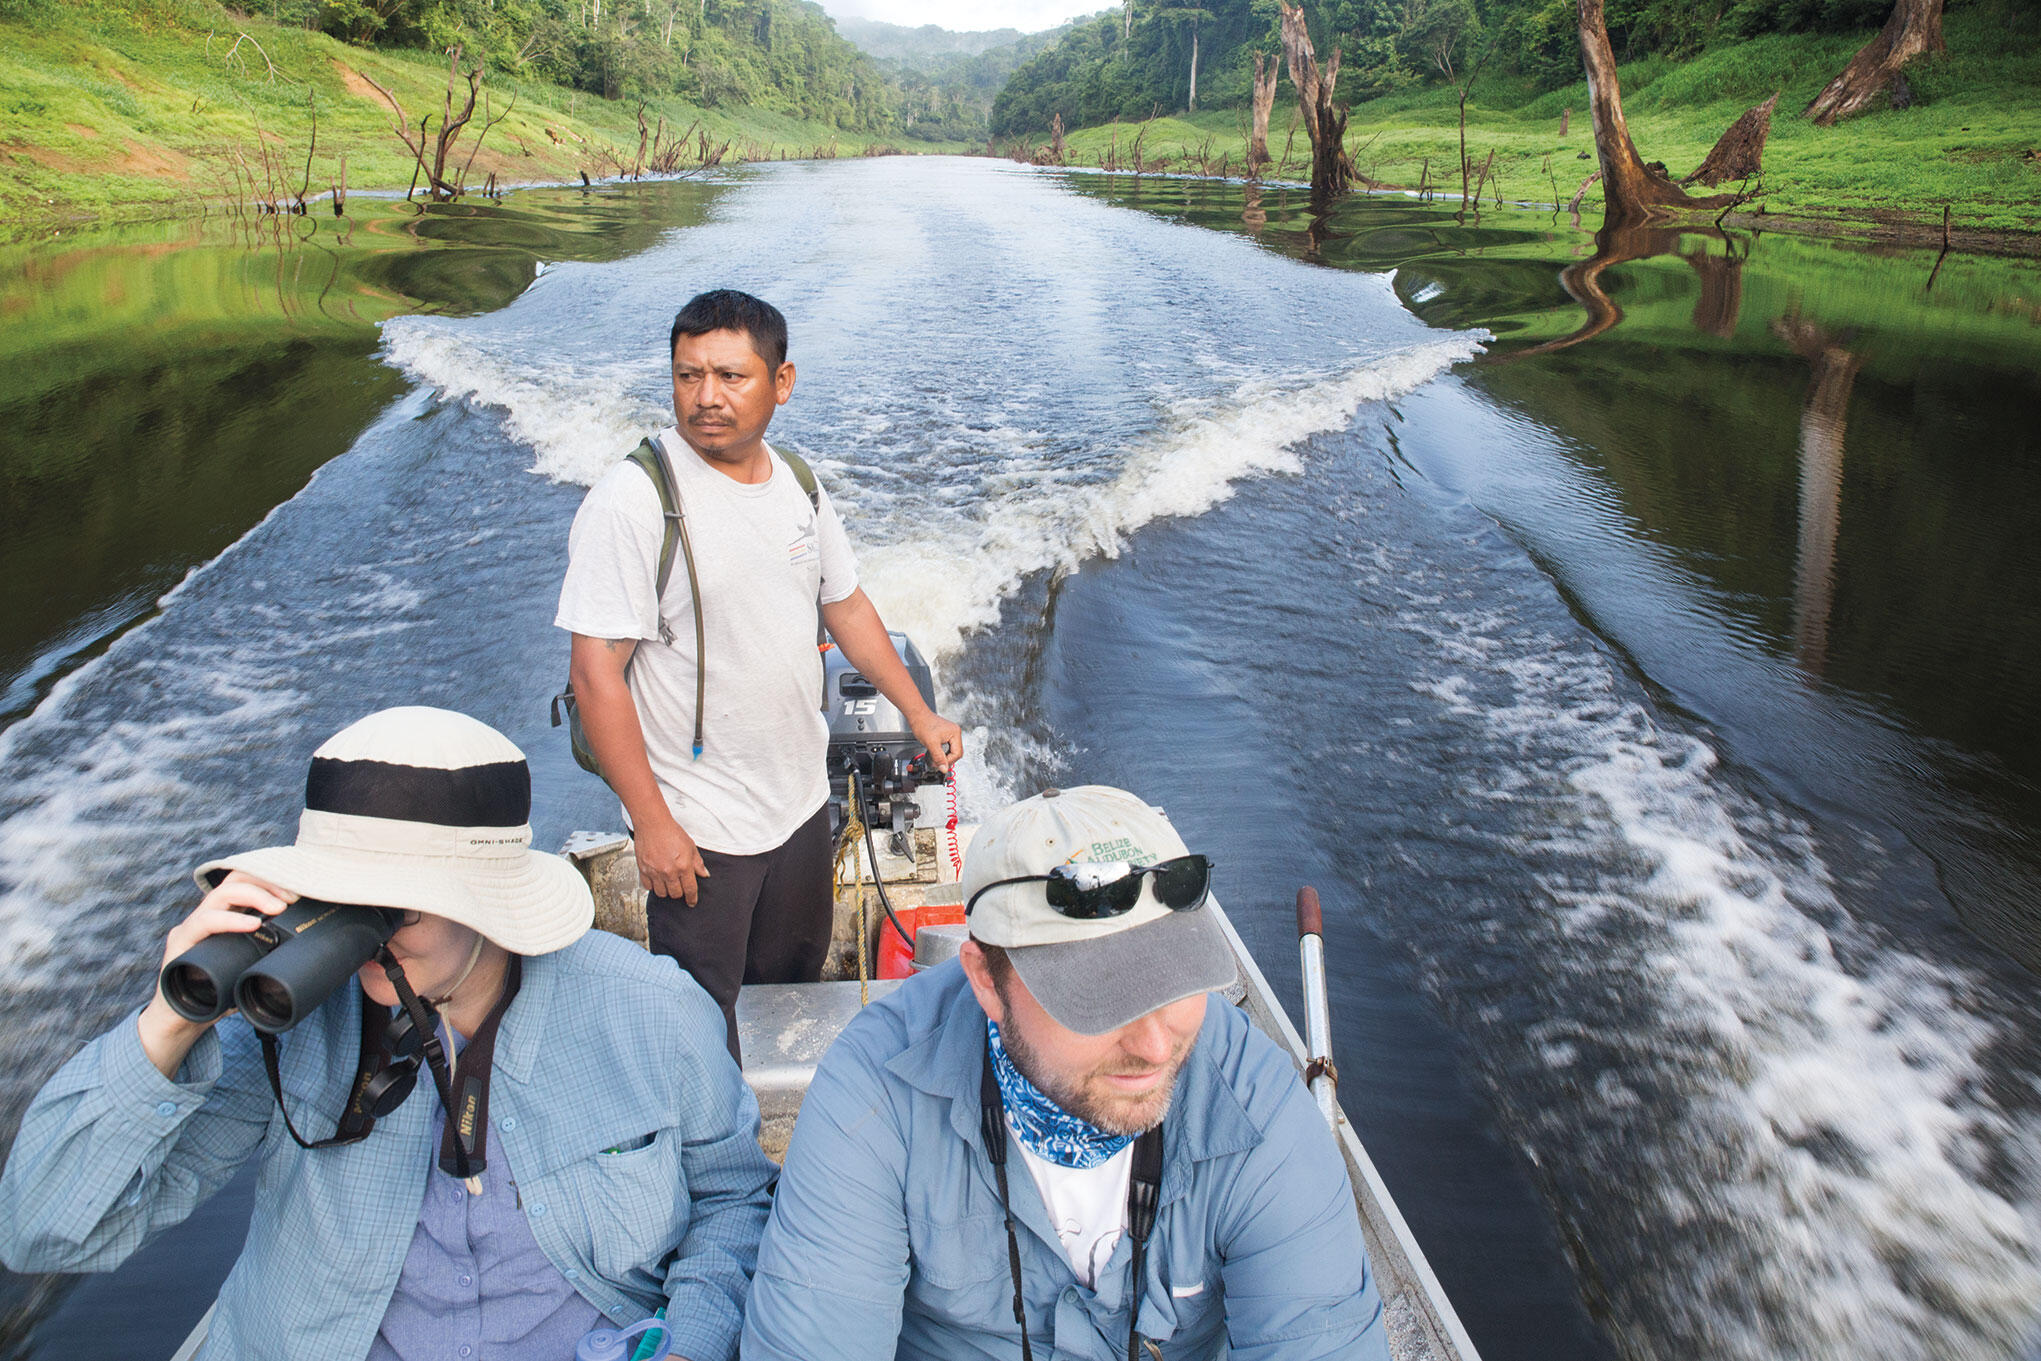 Luis Mai (standing), the longest-tenured ranger for Scarlet Six, navigates upstream in the Macal River. Camilla Cerea/Audubon